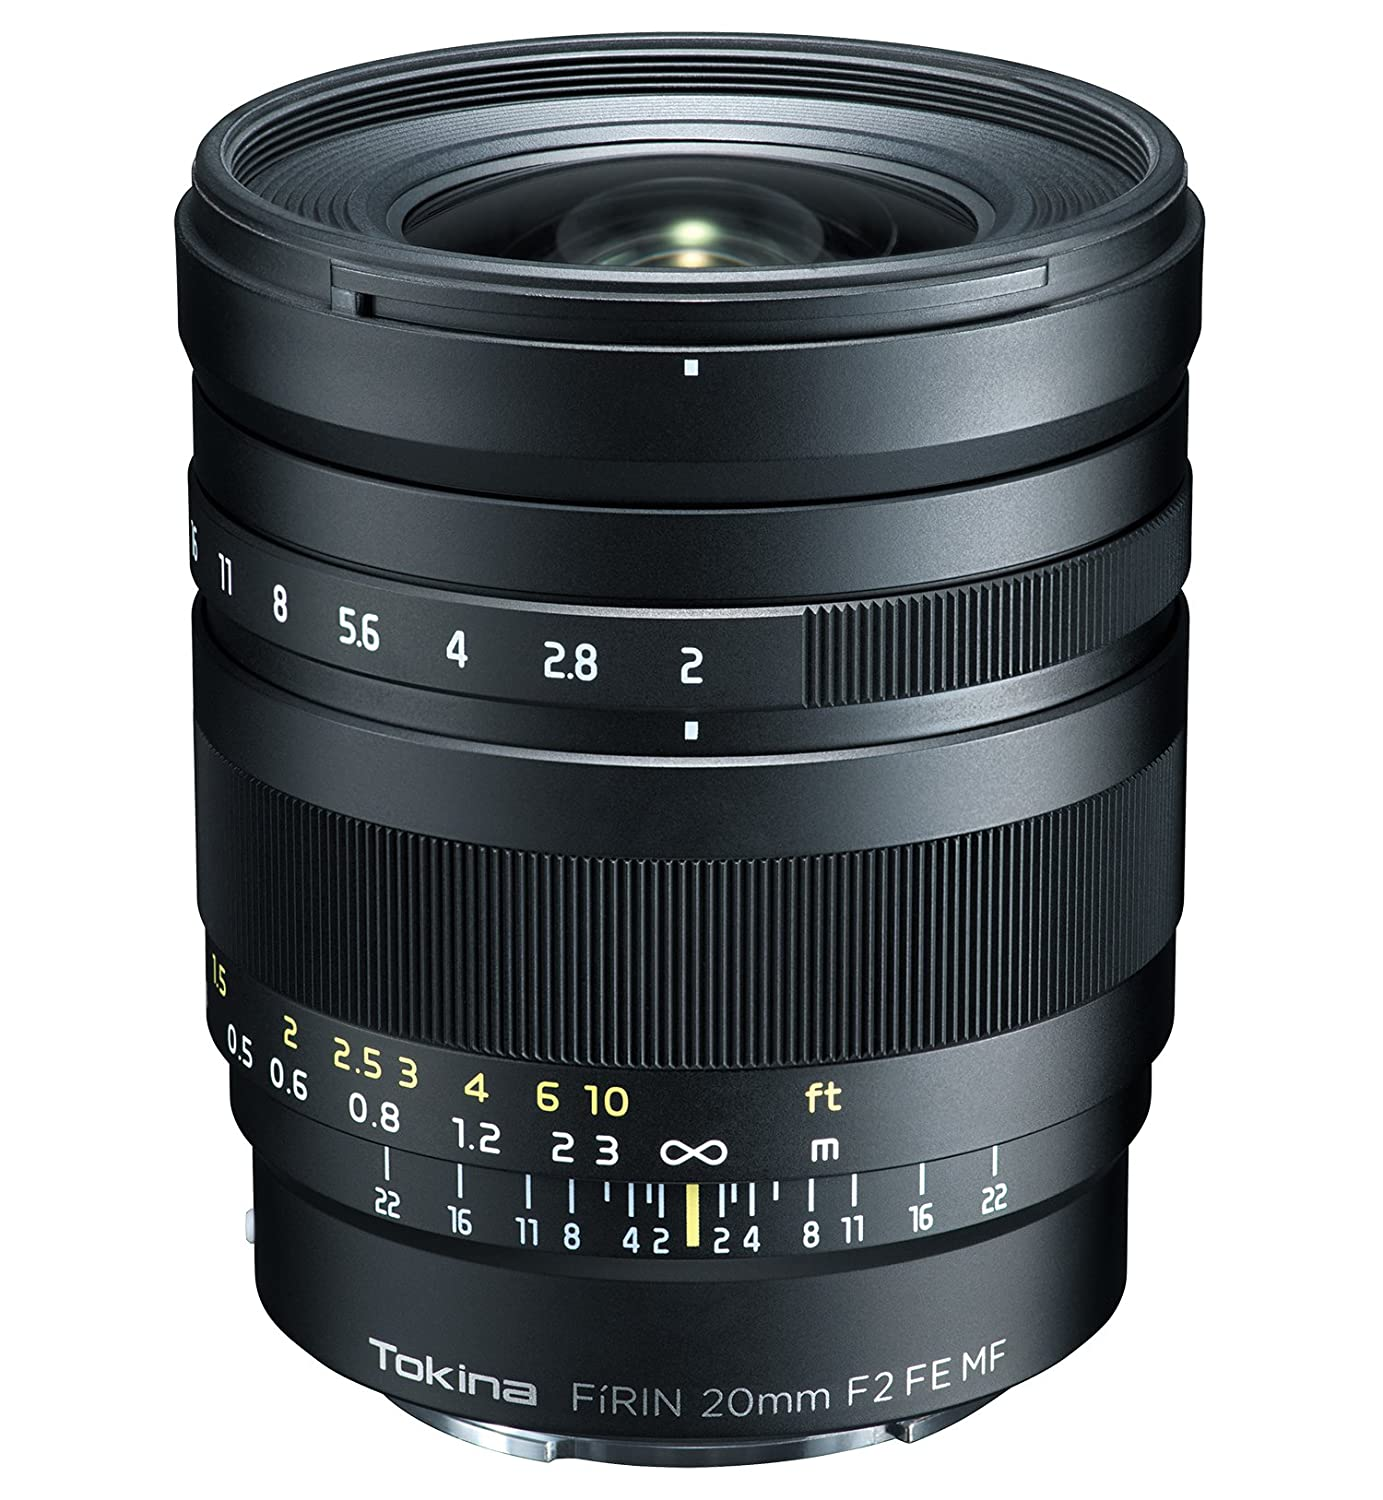 Tokina 20 mm/F 2.0 MF FE FIRIN Objektiv: Amazon.de: Kamera